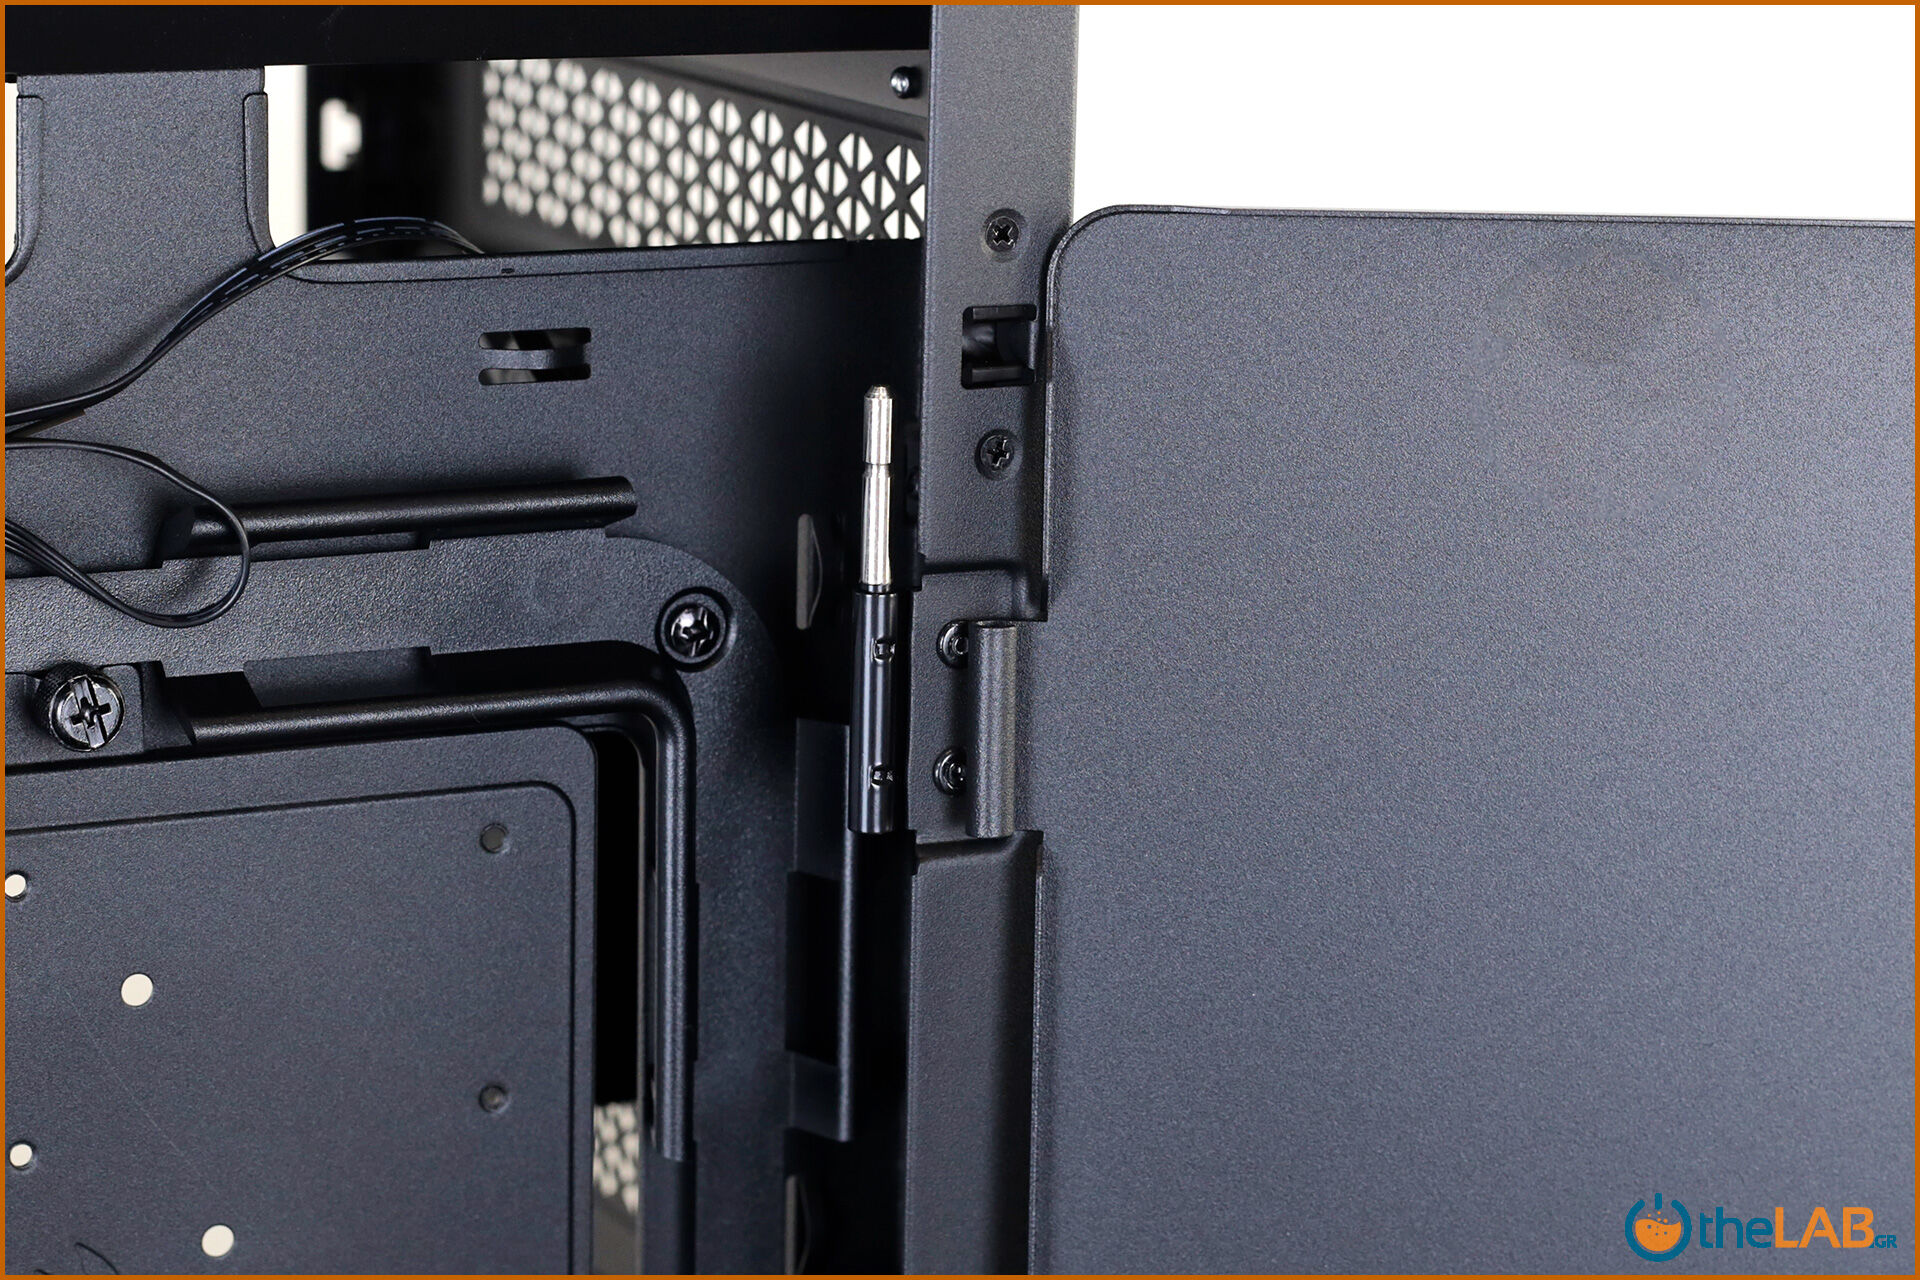 Corsair_icue_5000D__case_smart_exterior_interior_mid_tower_gaming_case_smart_review_image668.jpg